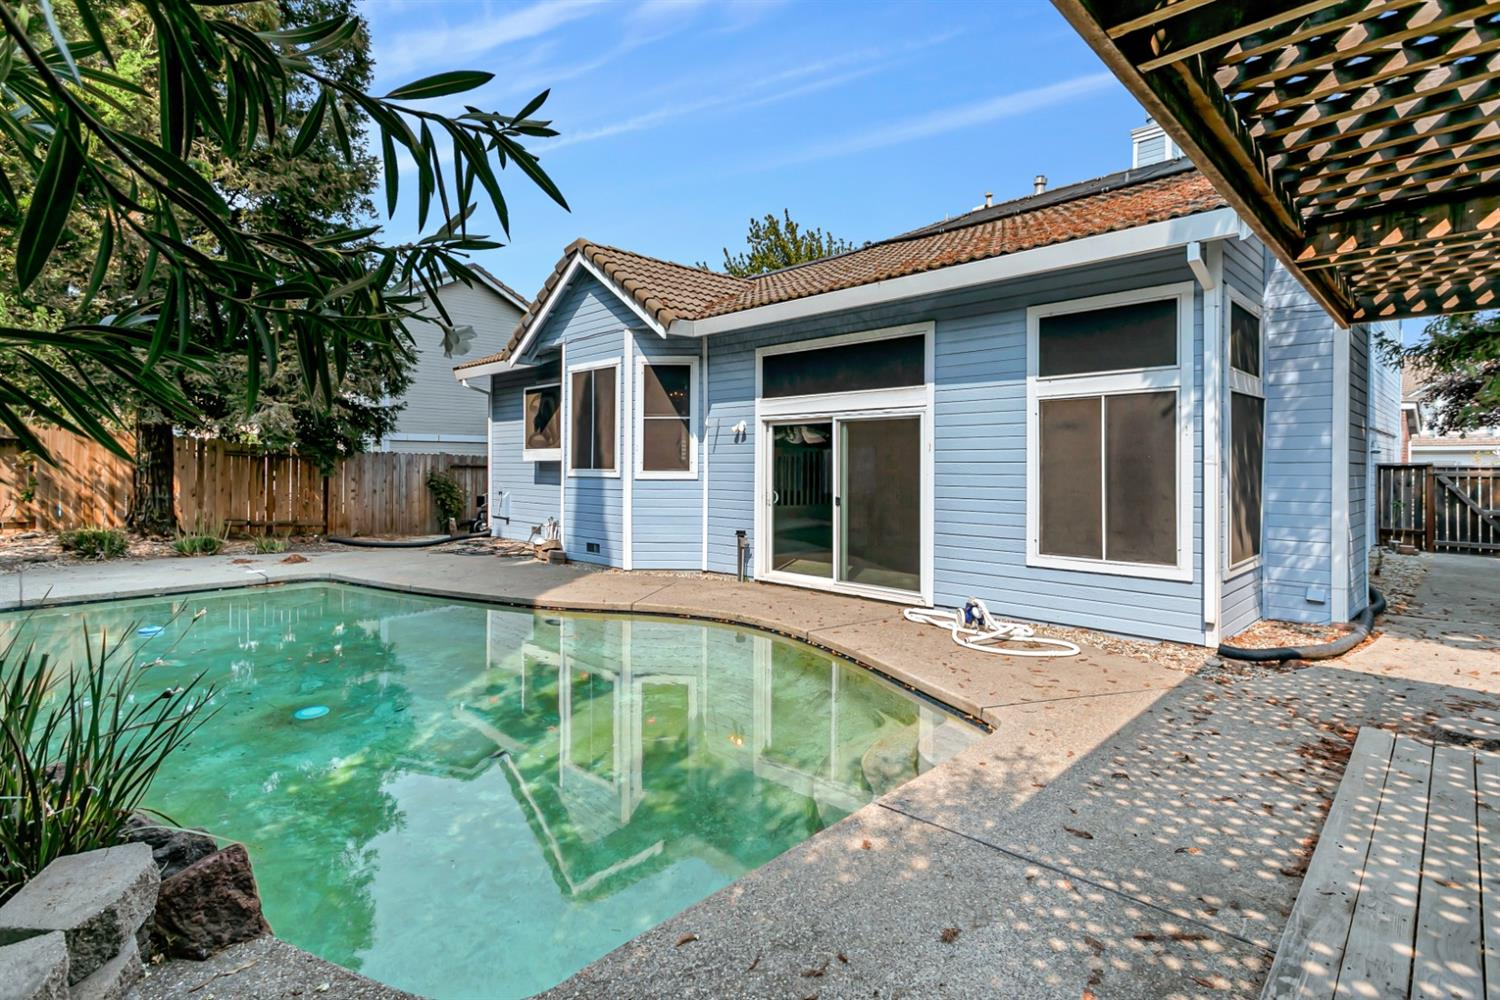 Photo 2 for Listing #221084351